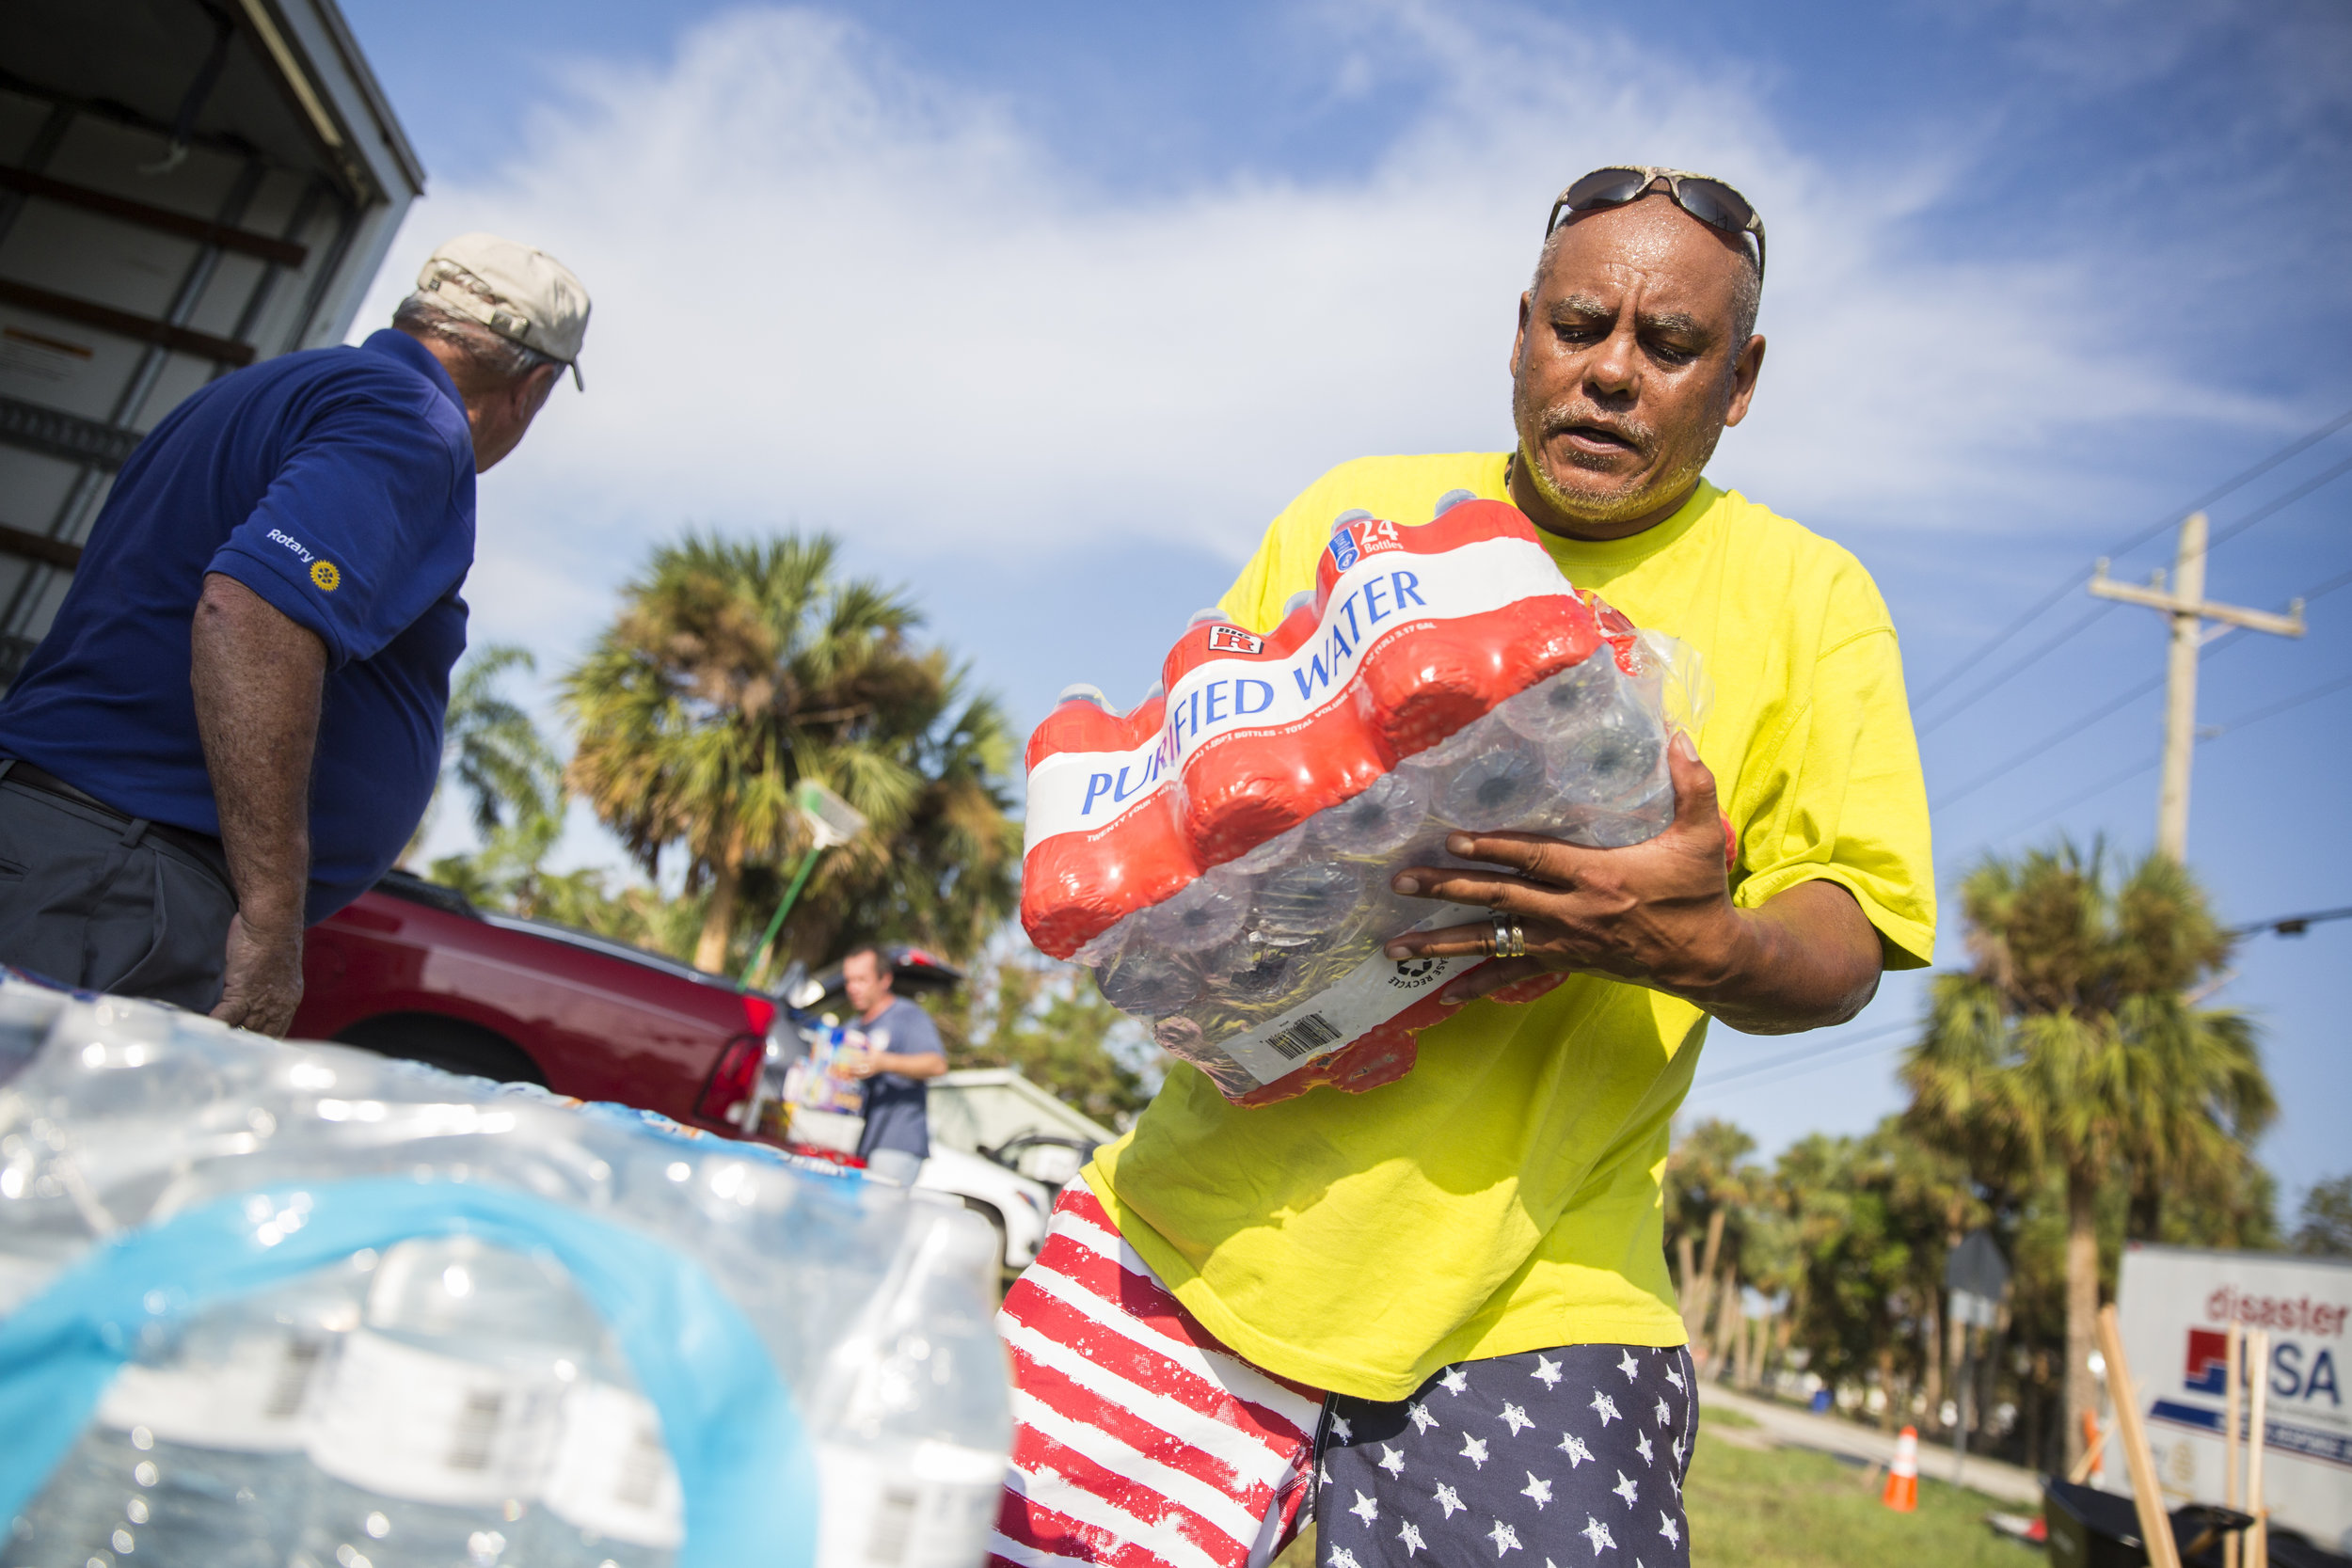 Rodney Malone helps unload a truck of provisions from the American Red Cross in Bonita Springs on Tuesday September 26, 2017.